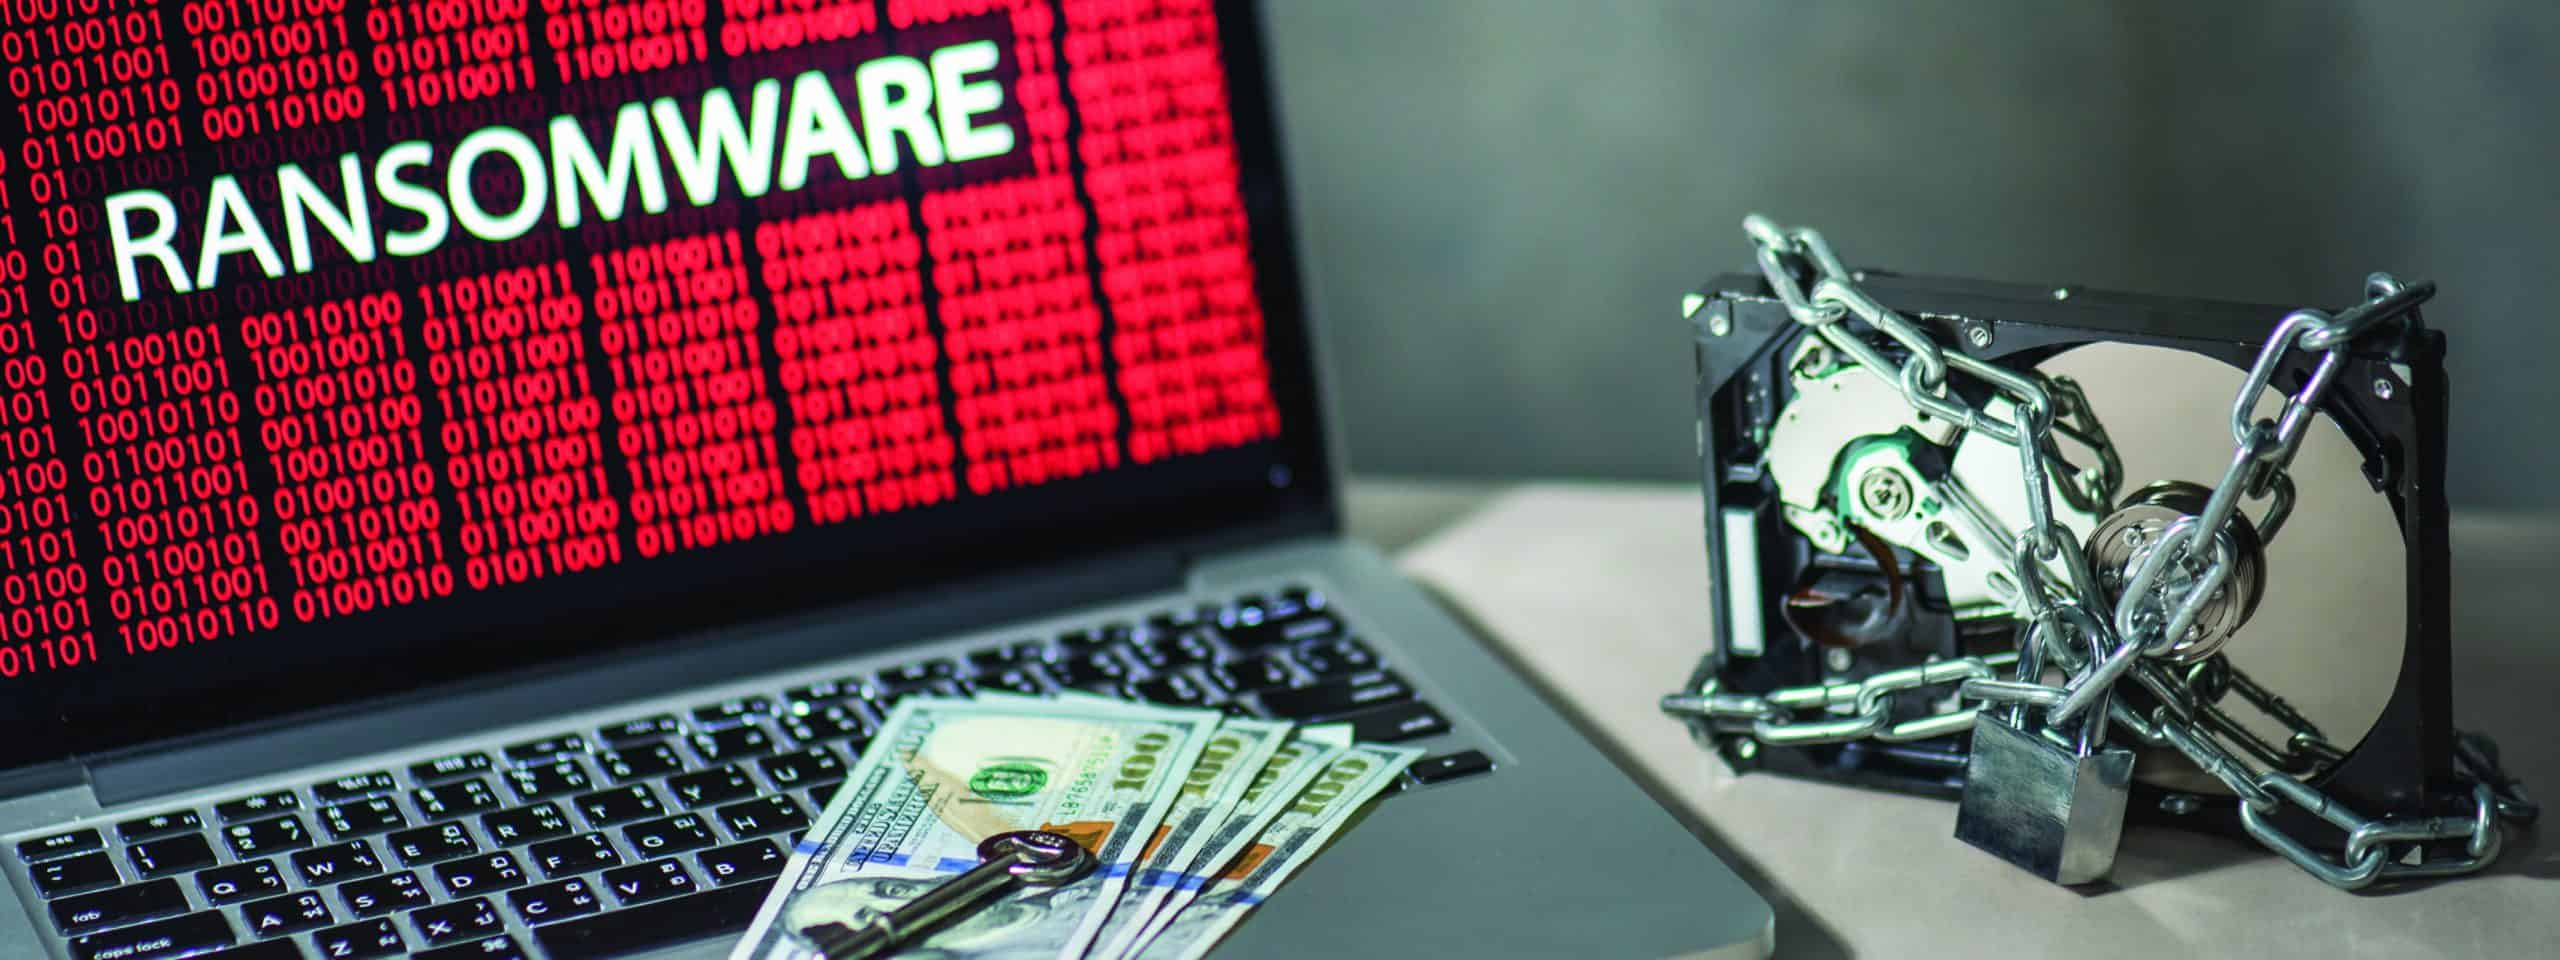 What is ransomware   How to prevent ransomware attacks